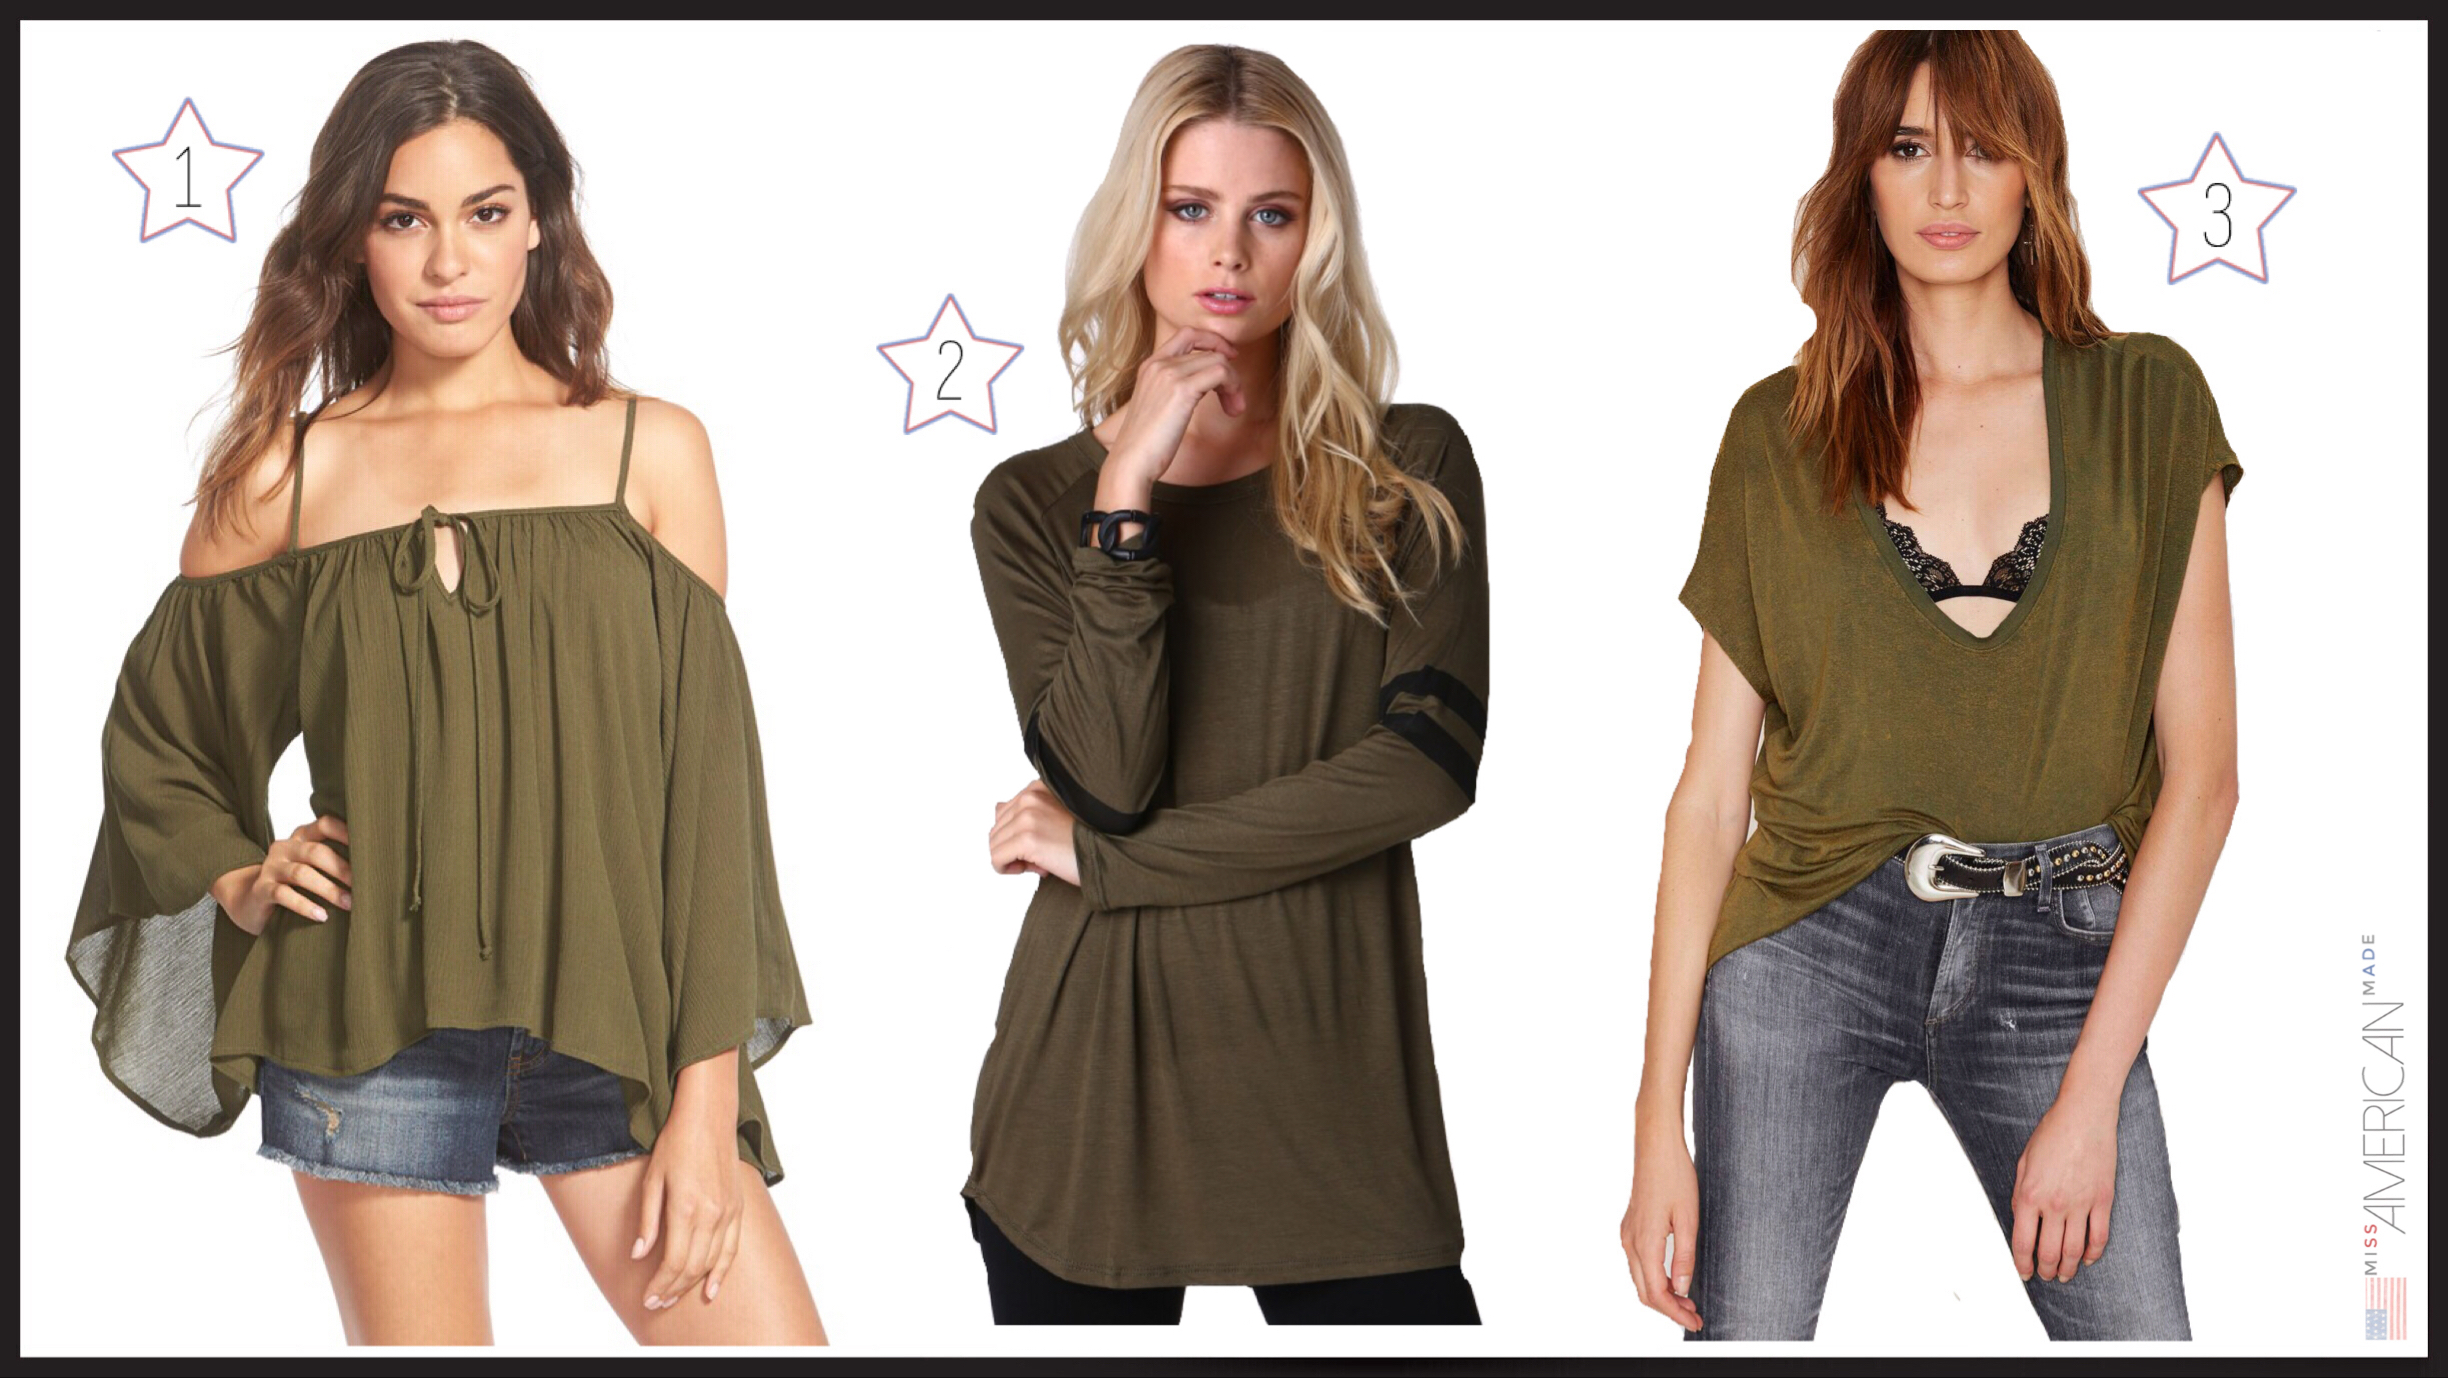 Made in USA Olive colored tops